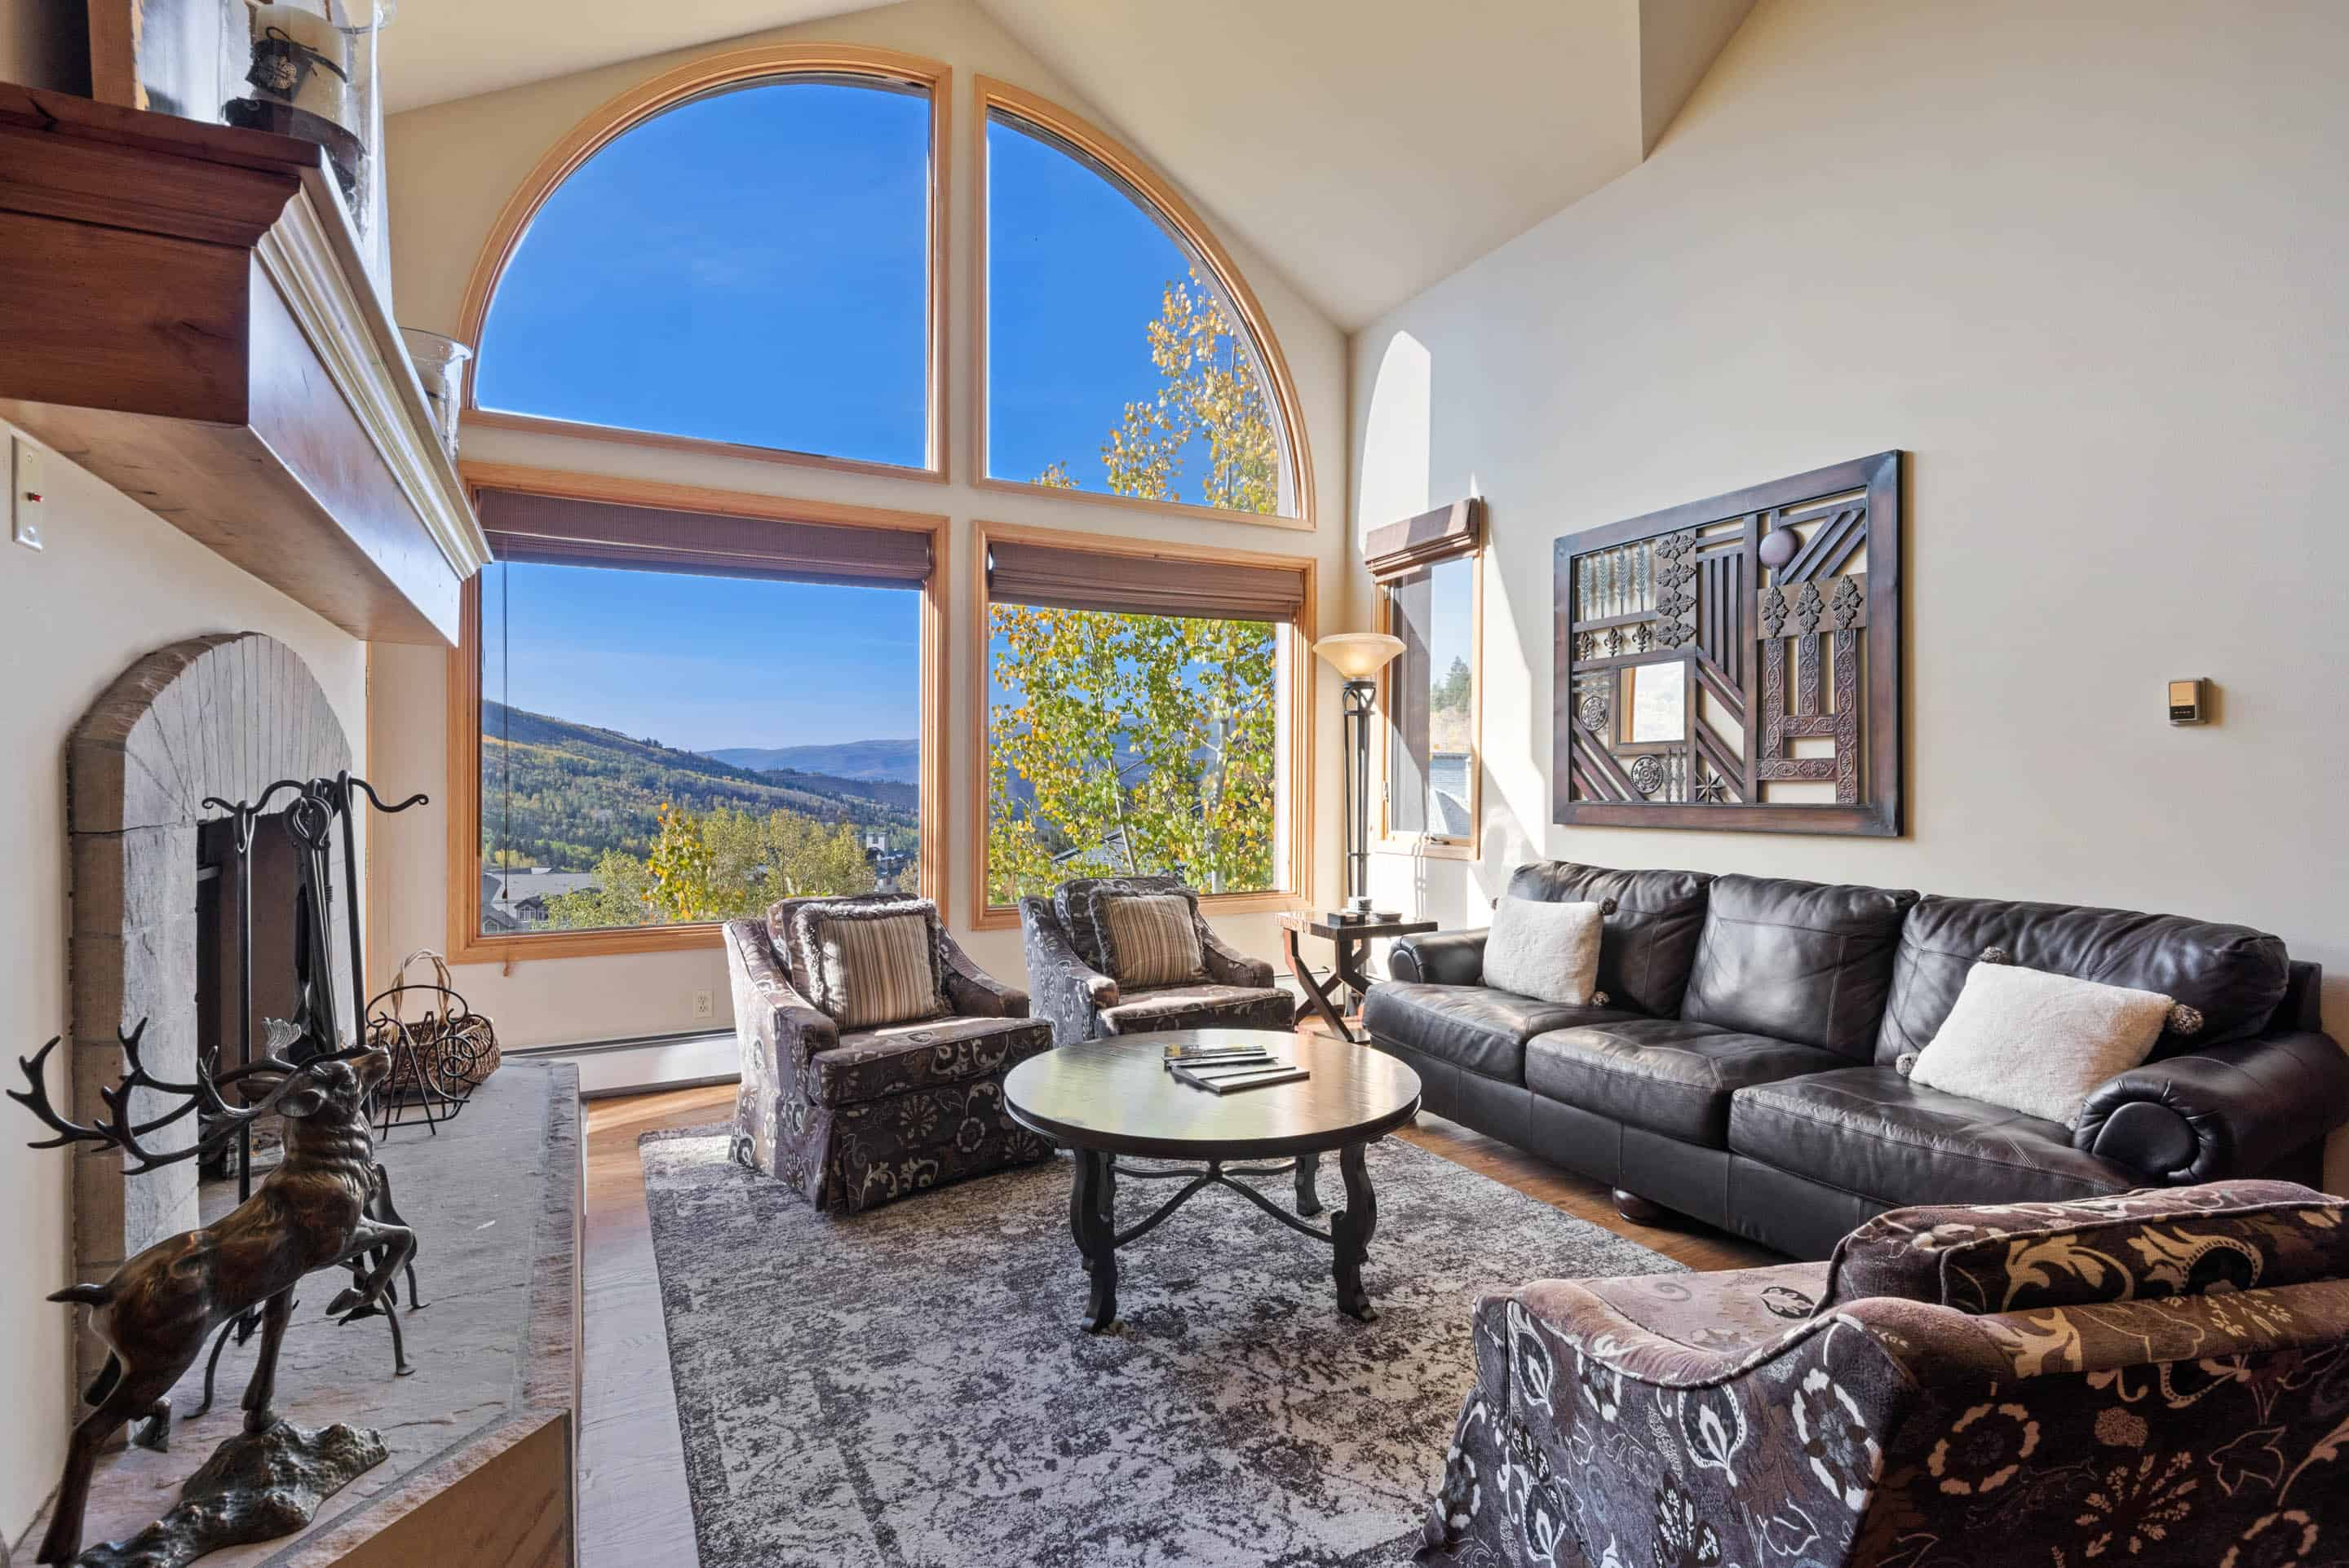 Property Image 1 - Modern, Sophisticated Condo with Beautiful Views & Ski Access